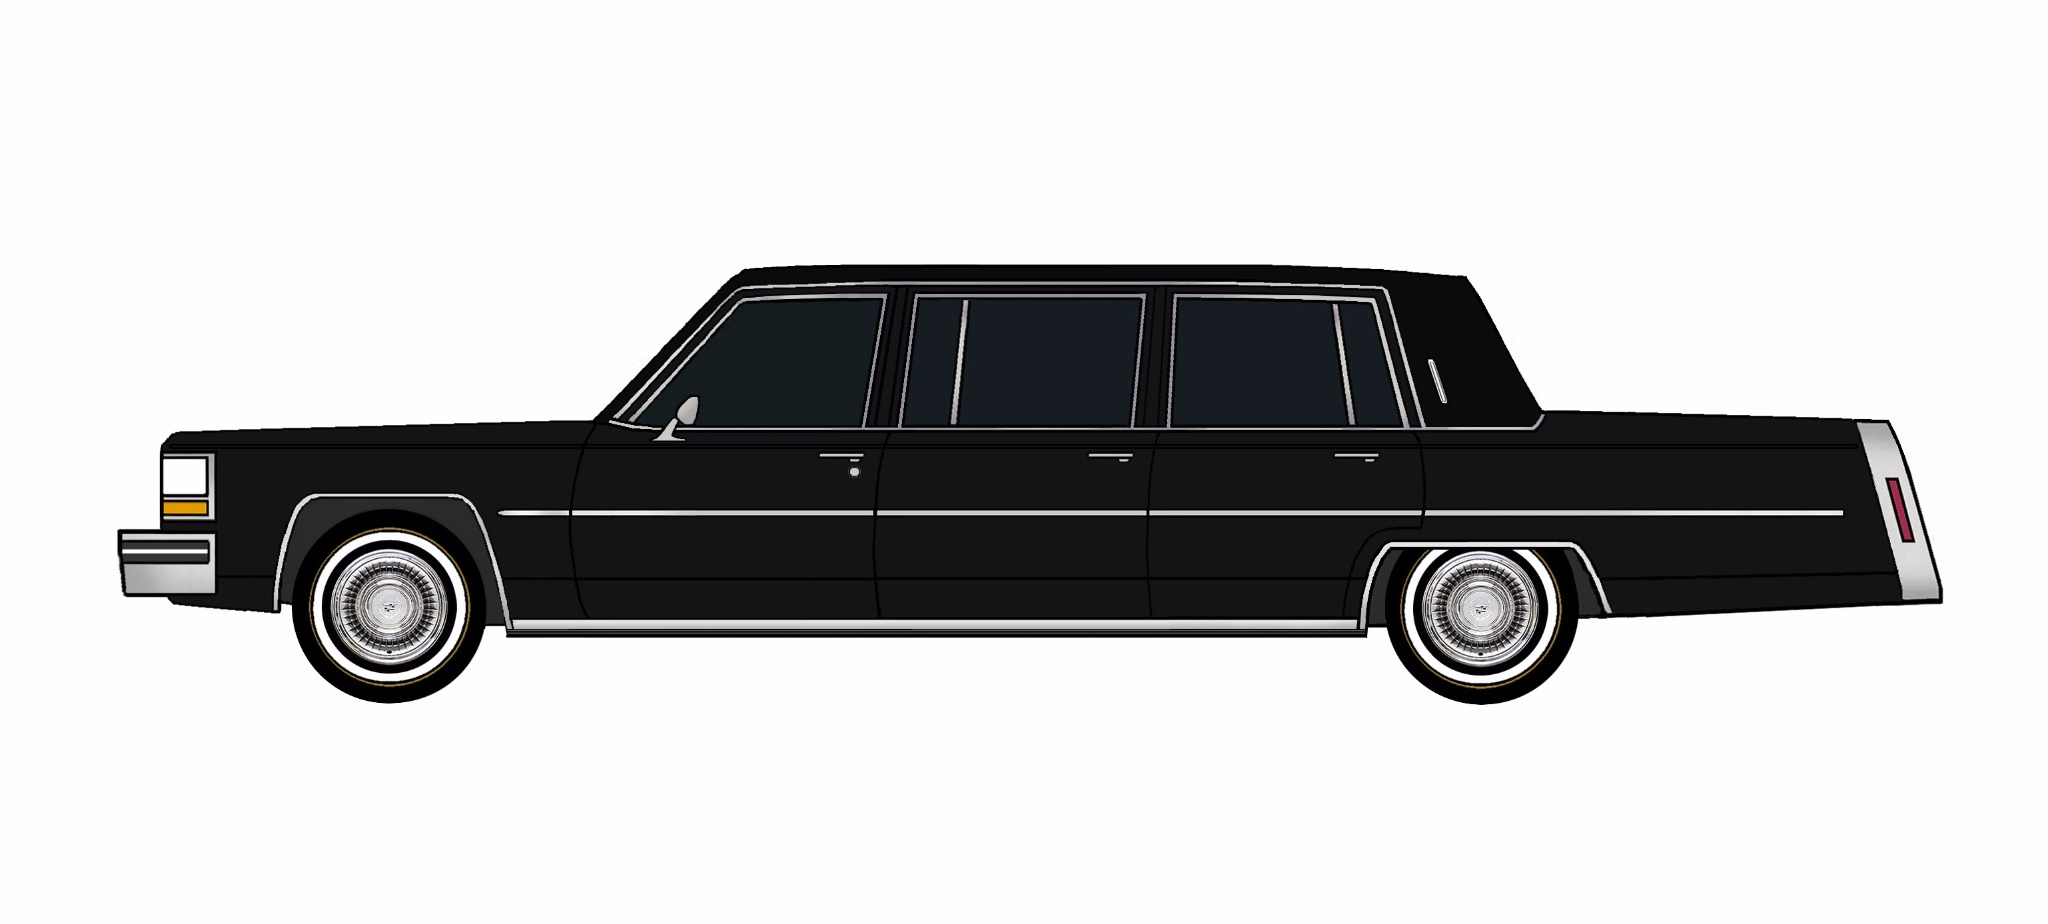 1980 Cadillac Fleetwood Funeral Limo BLACK